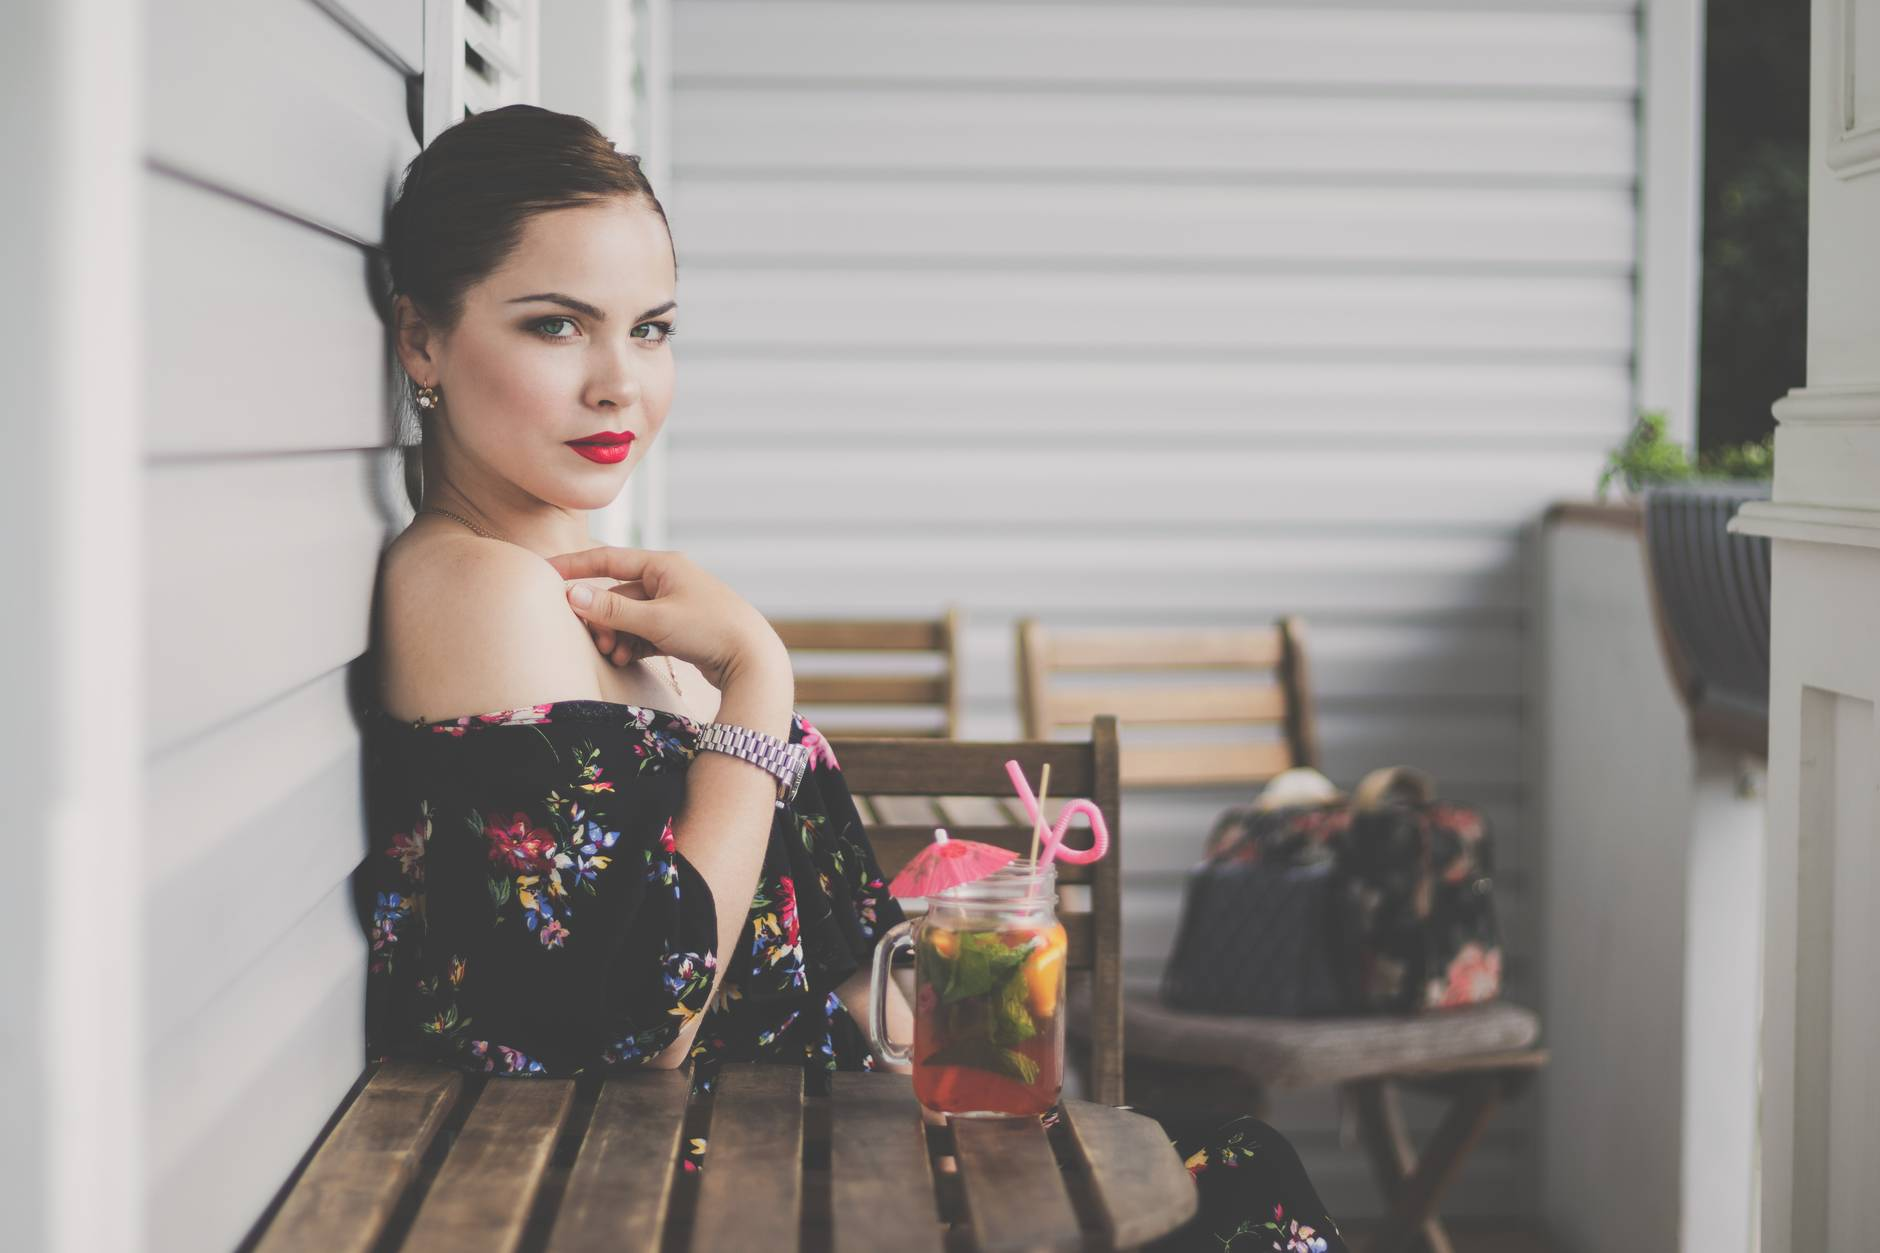 woman wearing black floral off shoulder top sitting on wooden chair